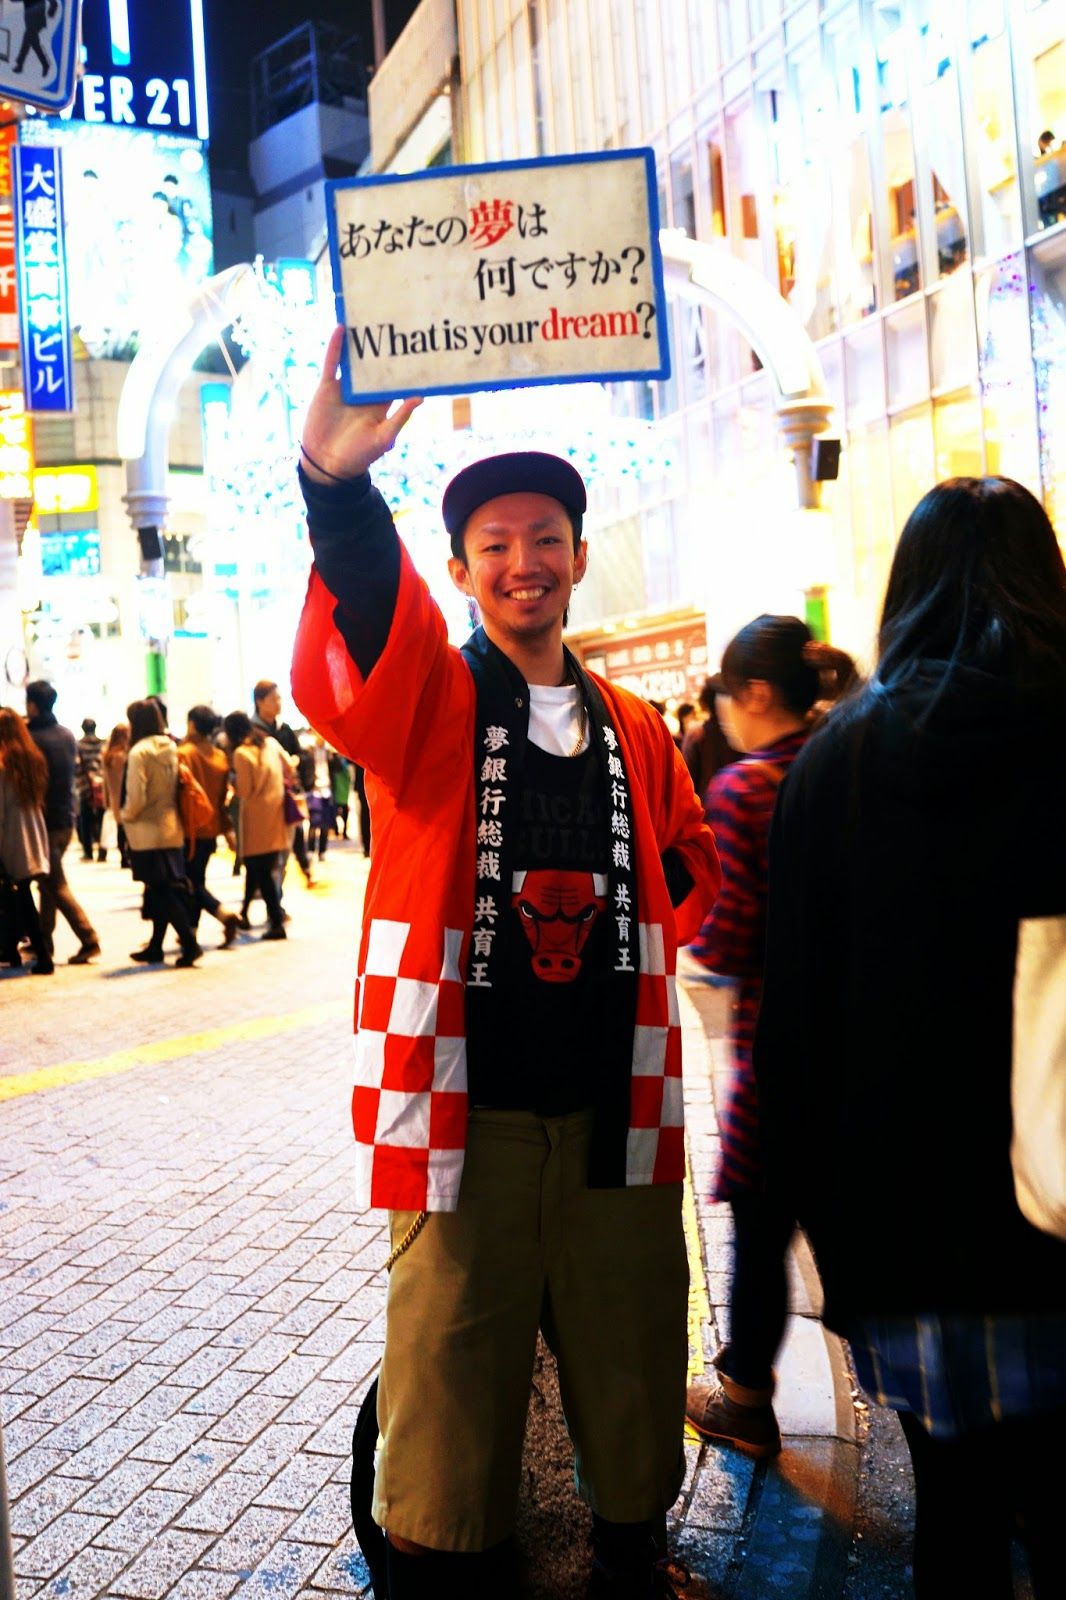 Shibuya intersection japanese person what's your dream sign